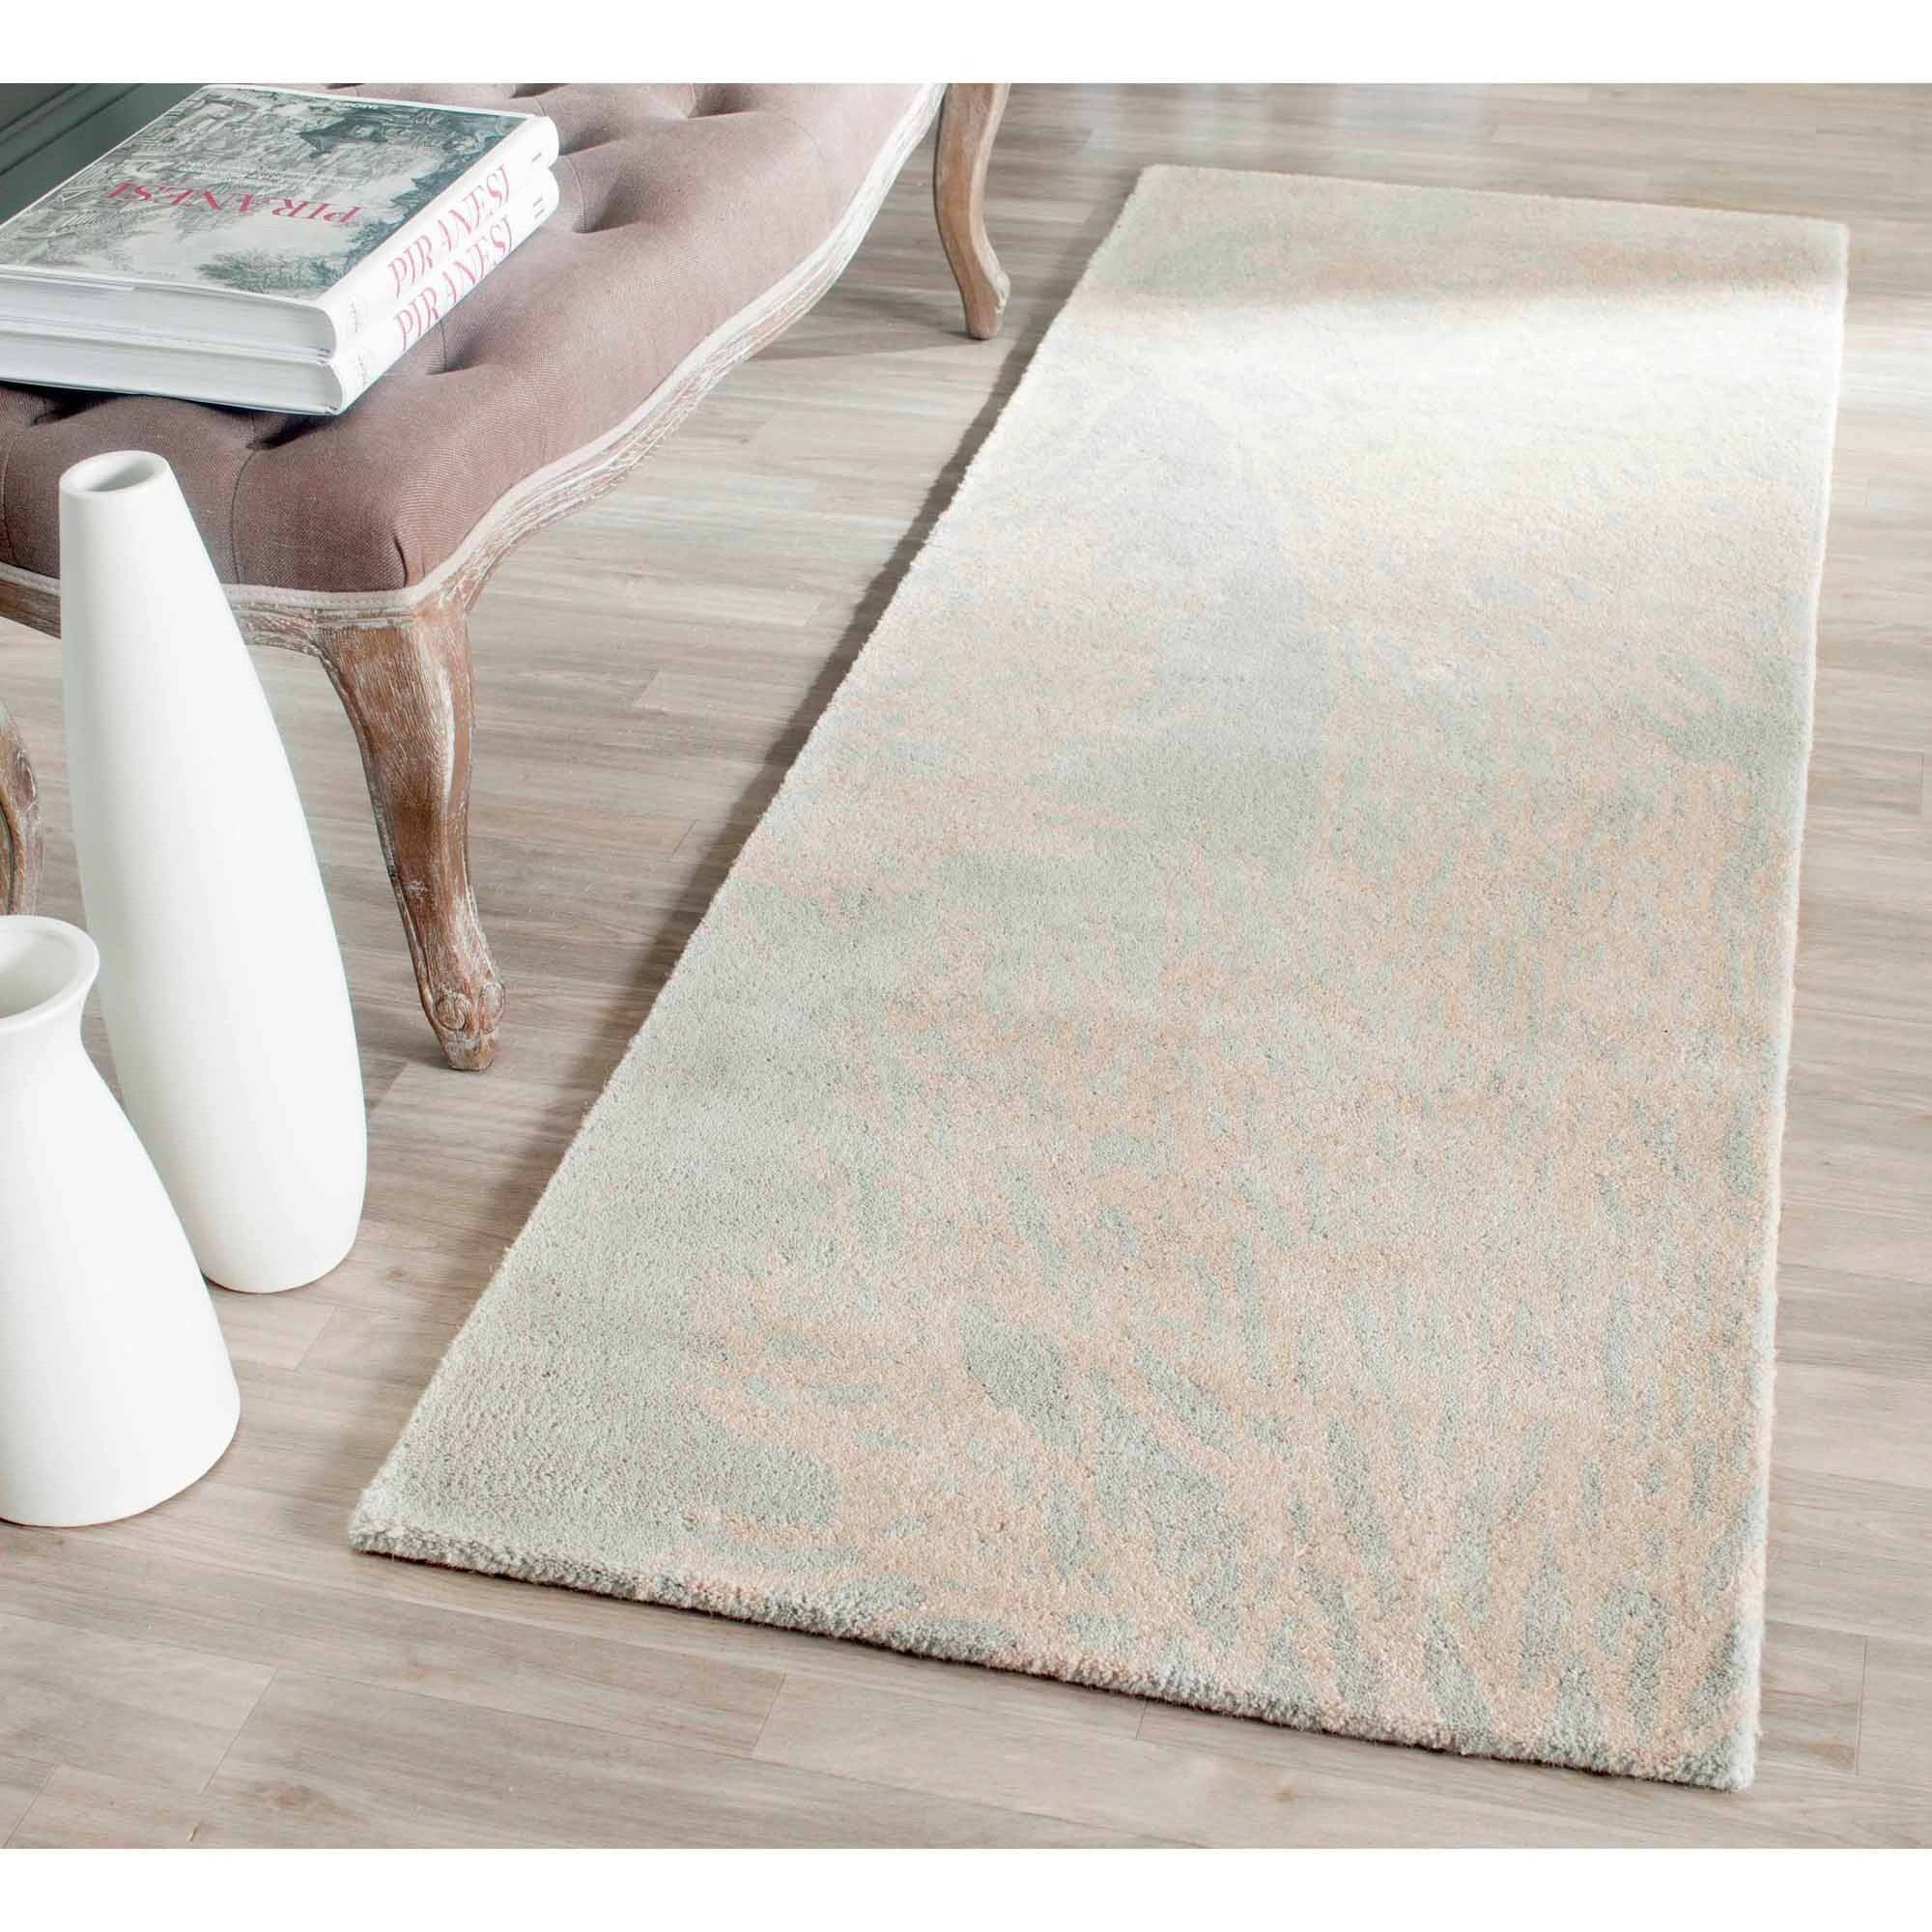 Safavieh Bella Hand Tufted Wool Runner Rug